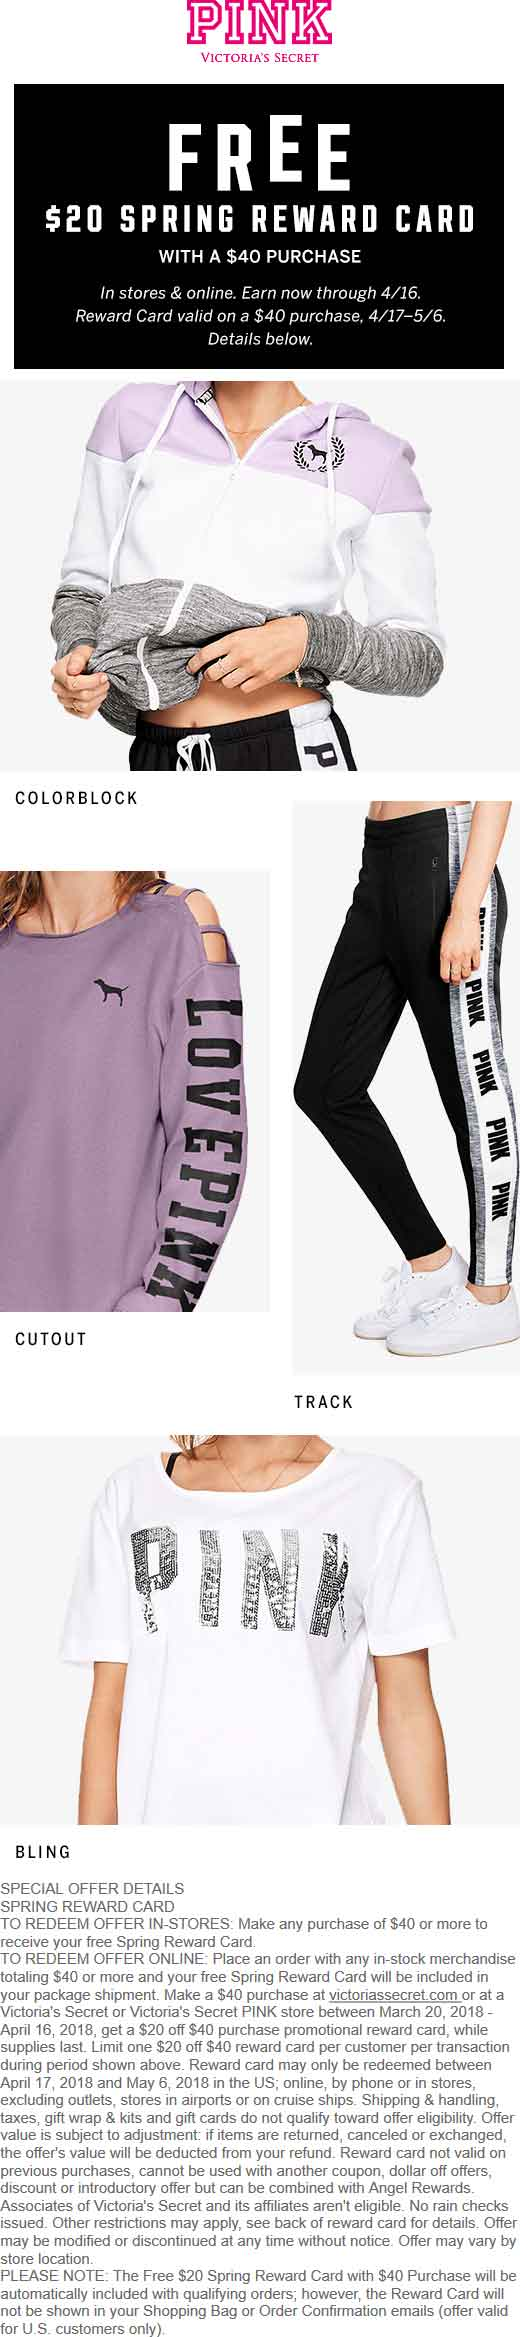 Victorias Secret Coupon October 2018 $20 store card on $40 spent at Victorias Secret PINK, ditto online